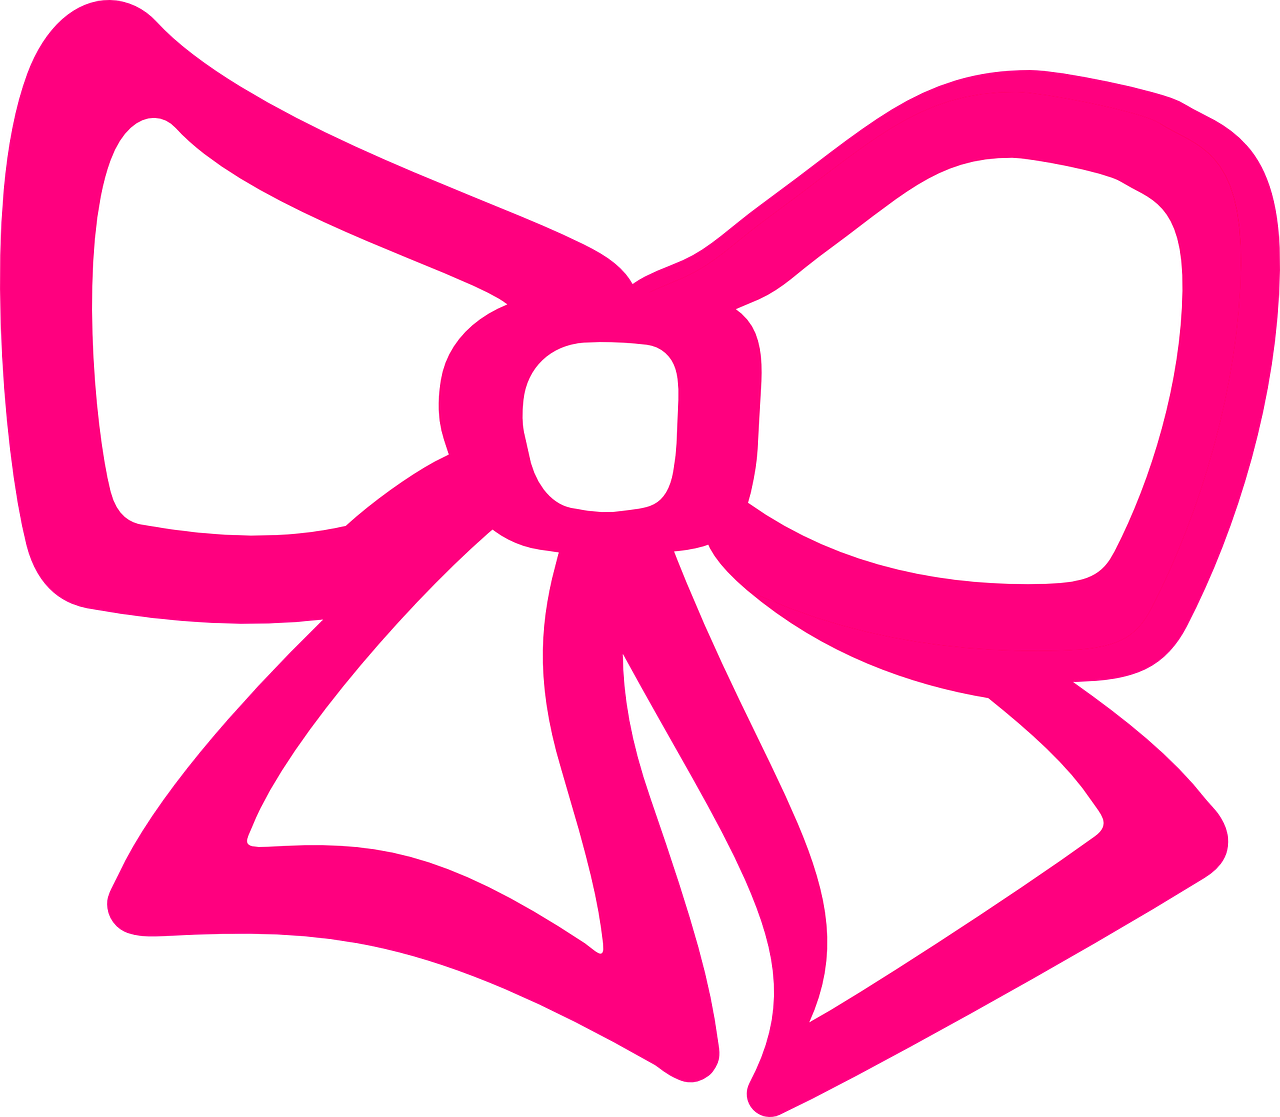 Bow Ribbon Pink   Free vector graphic on Pixabay